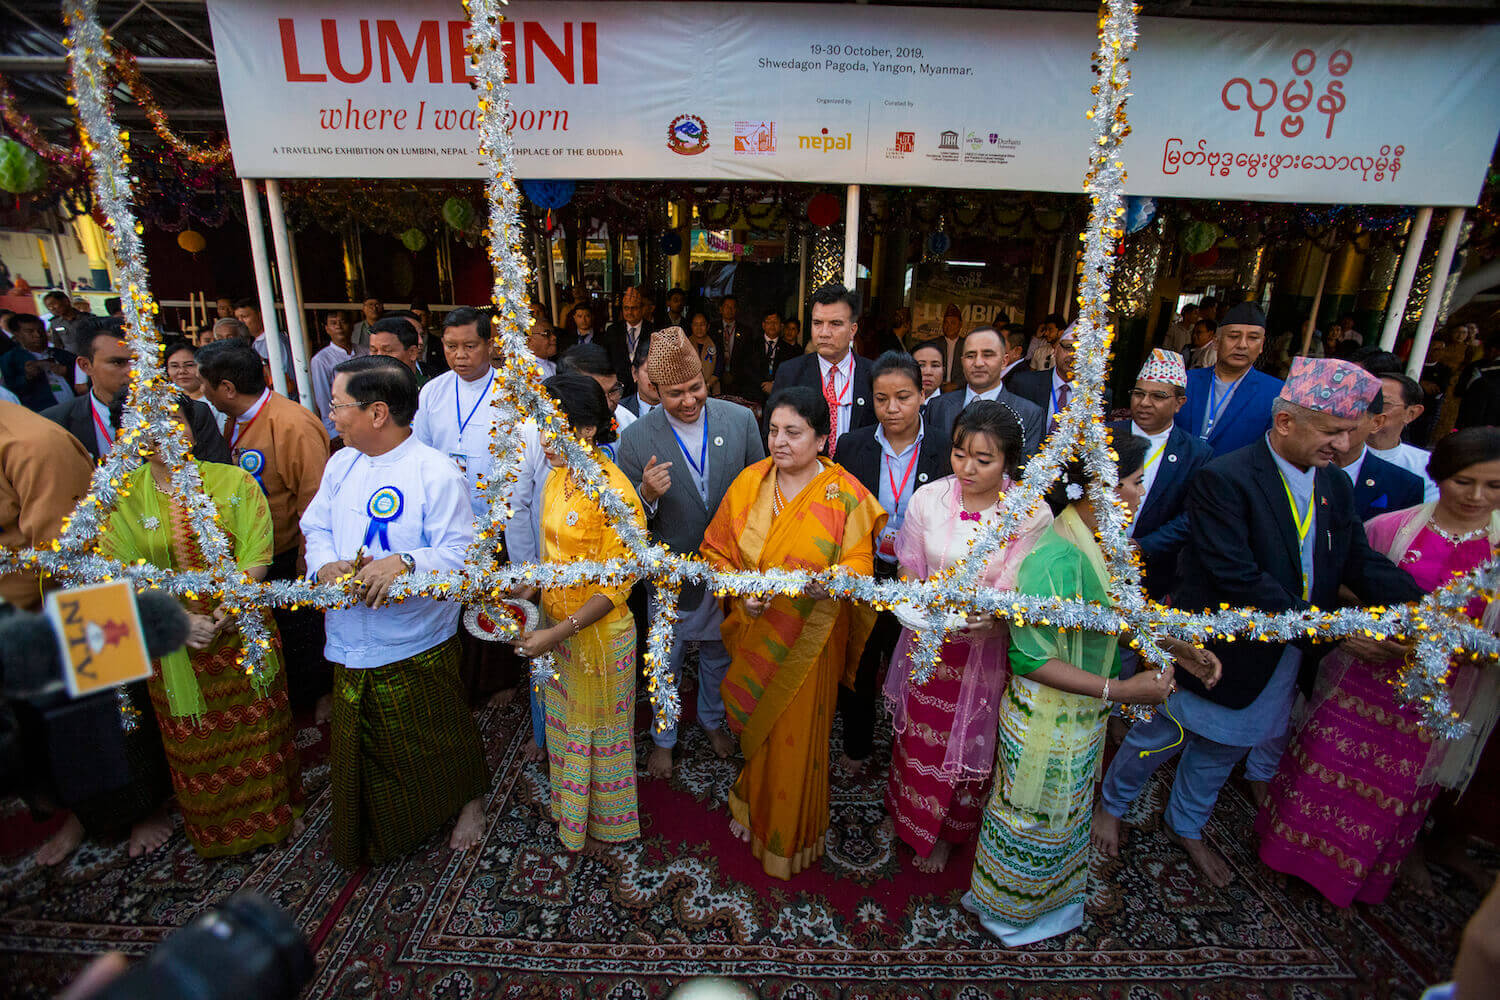 Lumbini Museum exhibition in Burma